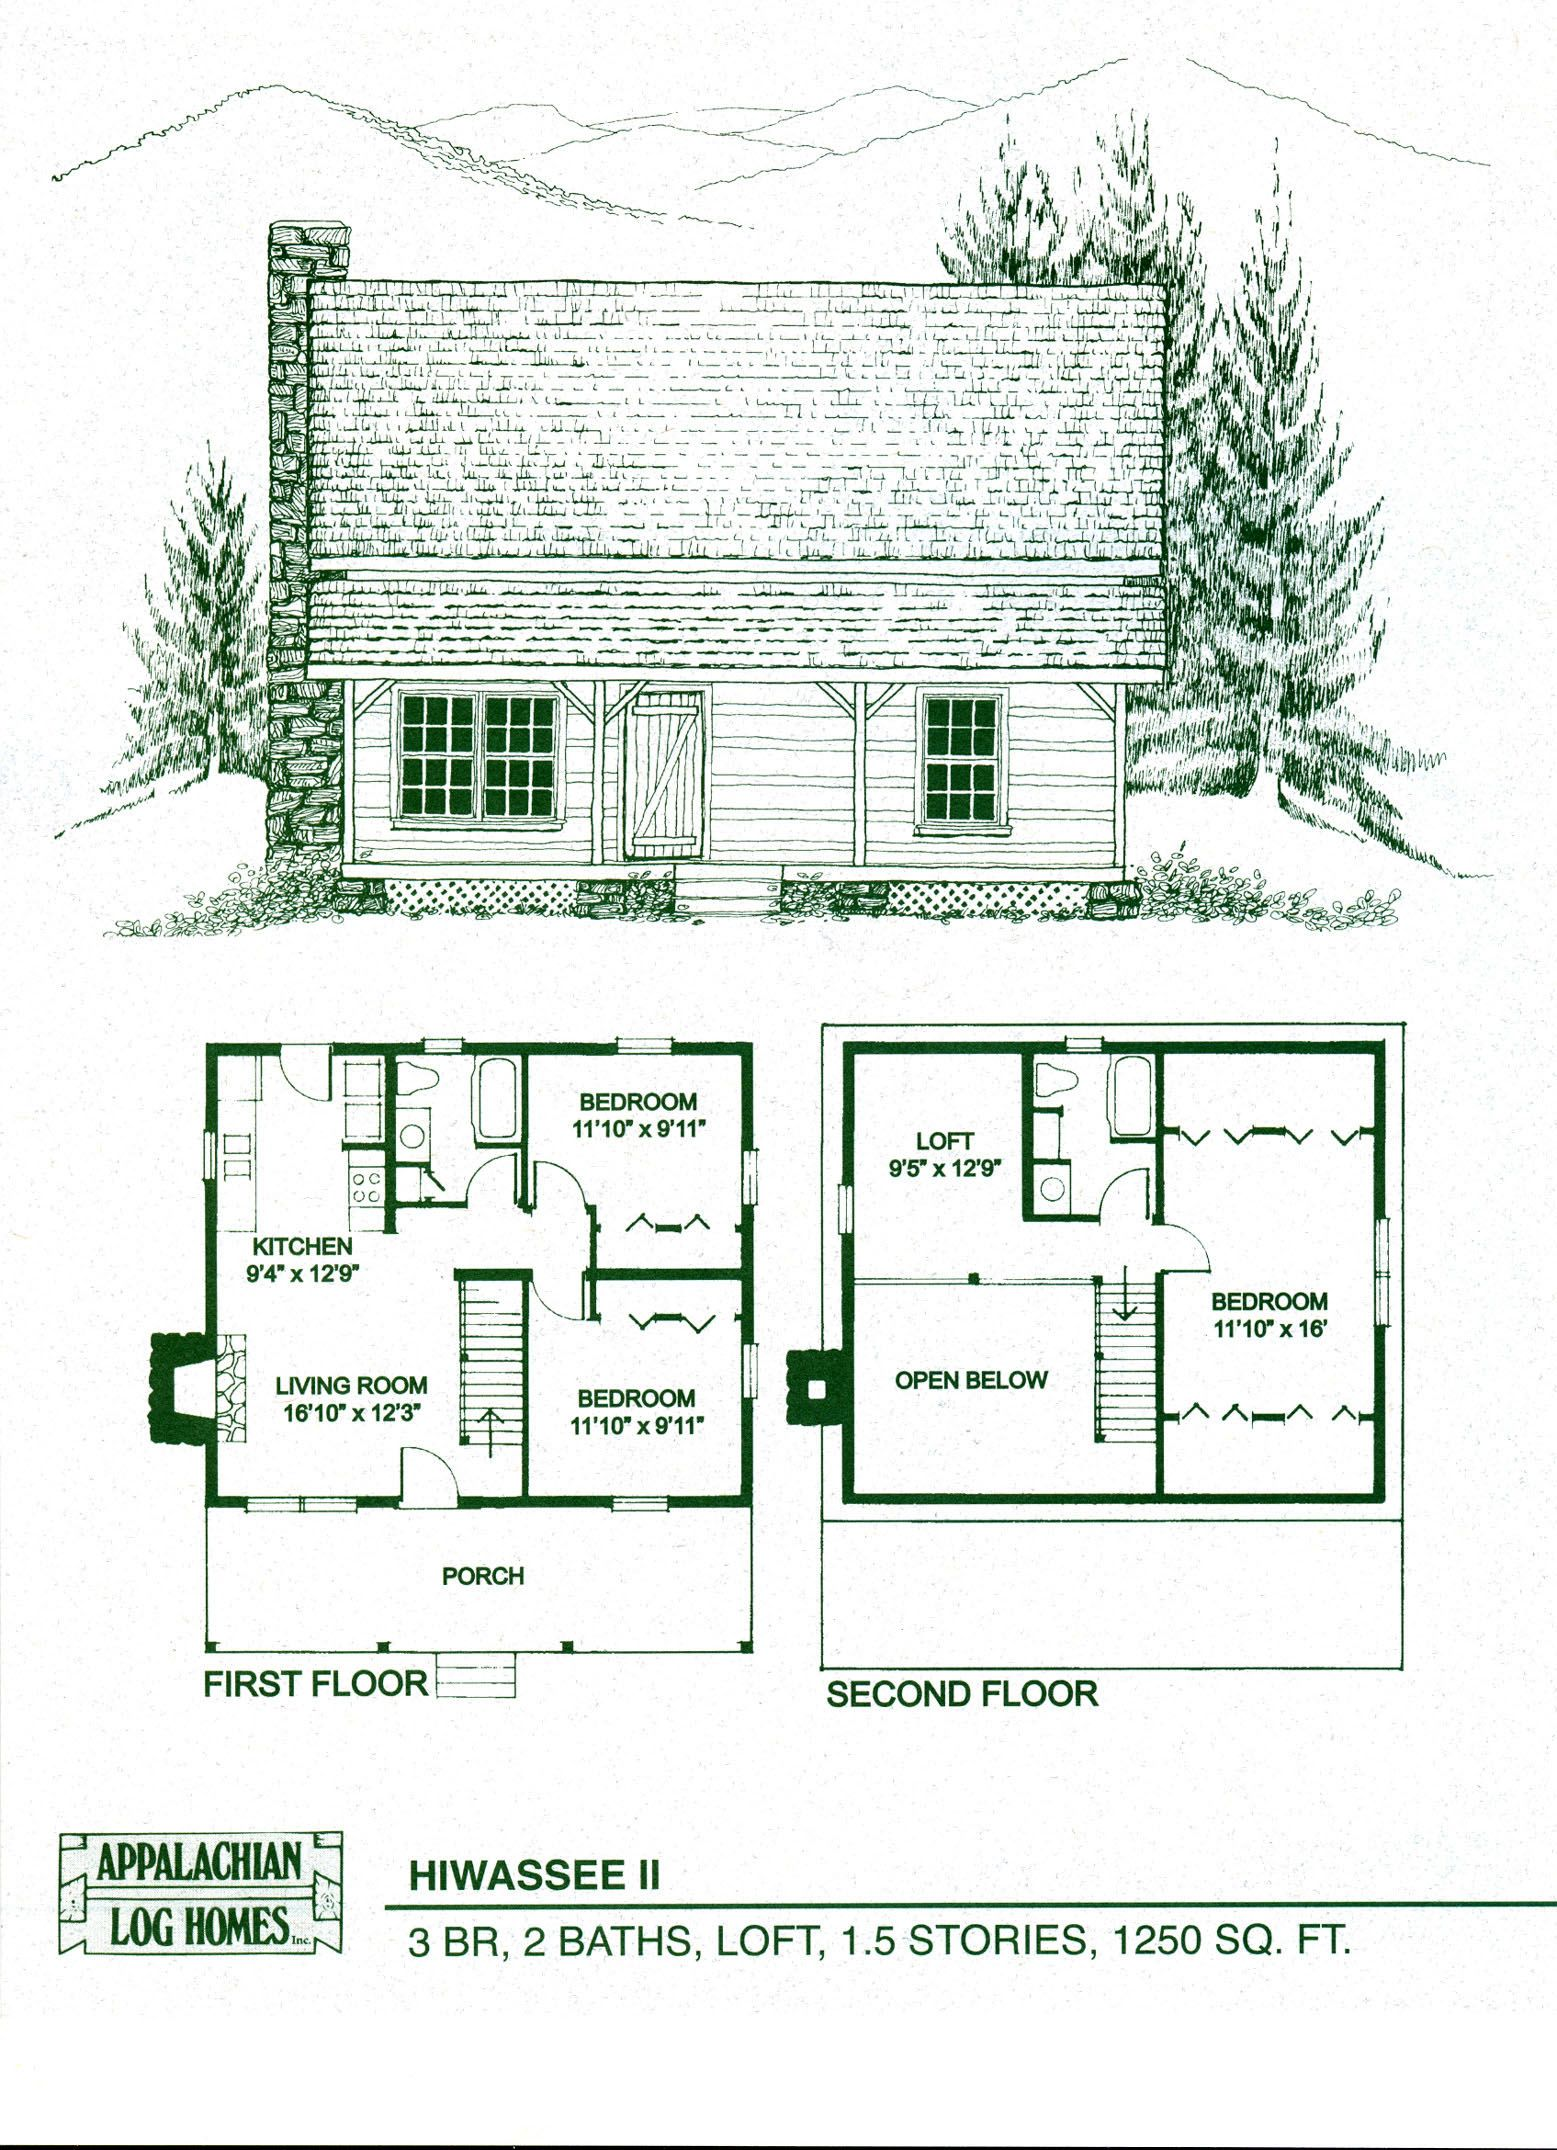 Log Home Floor Plans   Log Cabin Kits   Appalachian Log Homes    Log Home Floor Plans   Log Cabin Kits   Appalachian Log Homes   Log homes   Pinterest   Log Cabin Kits  Log Home Floor Plans and Cabin Kits